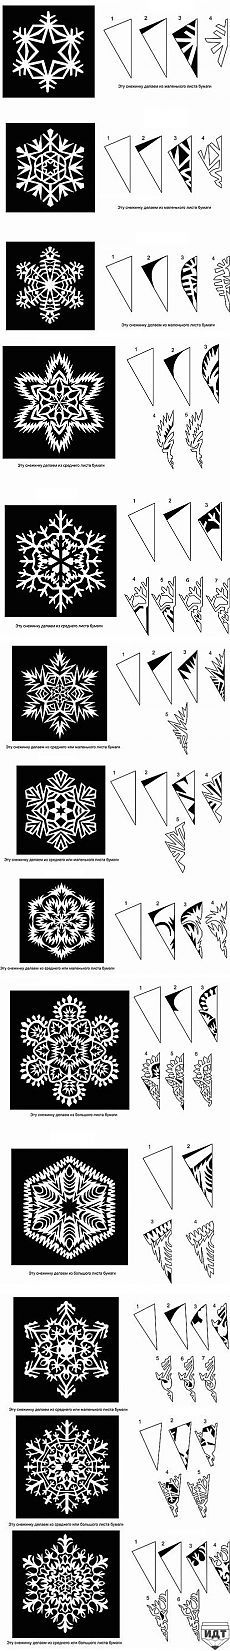 Delicate snowflakes out of paper.